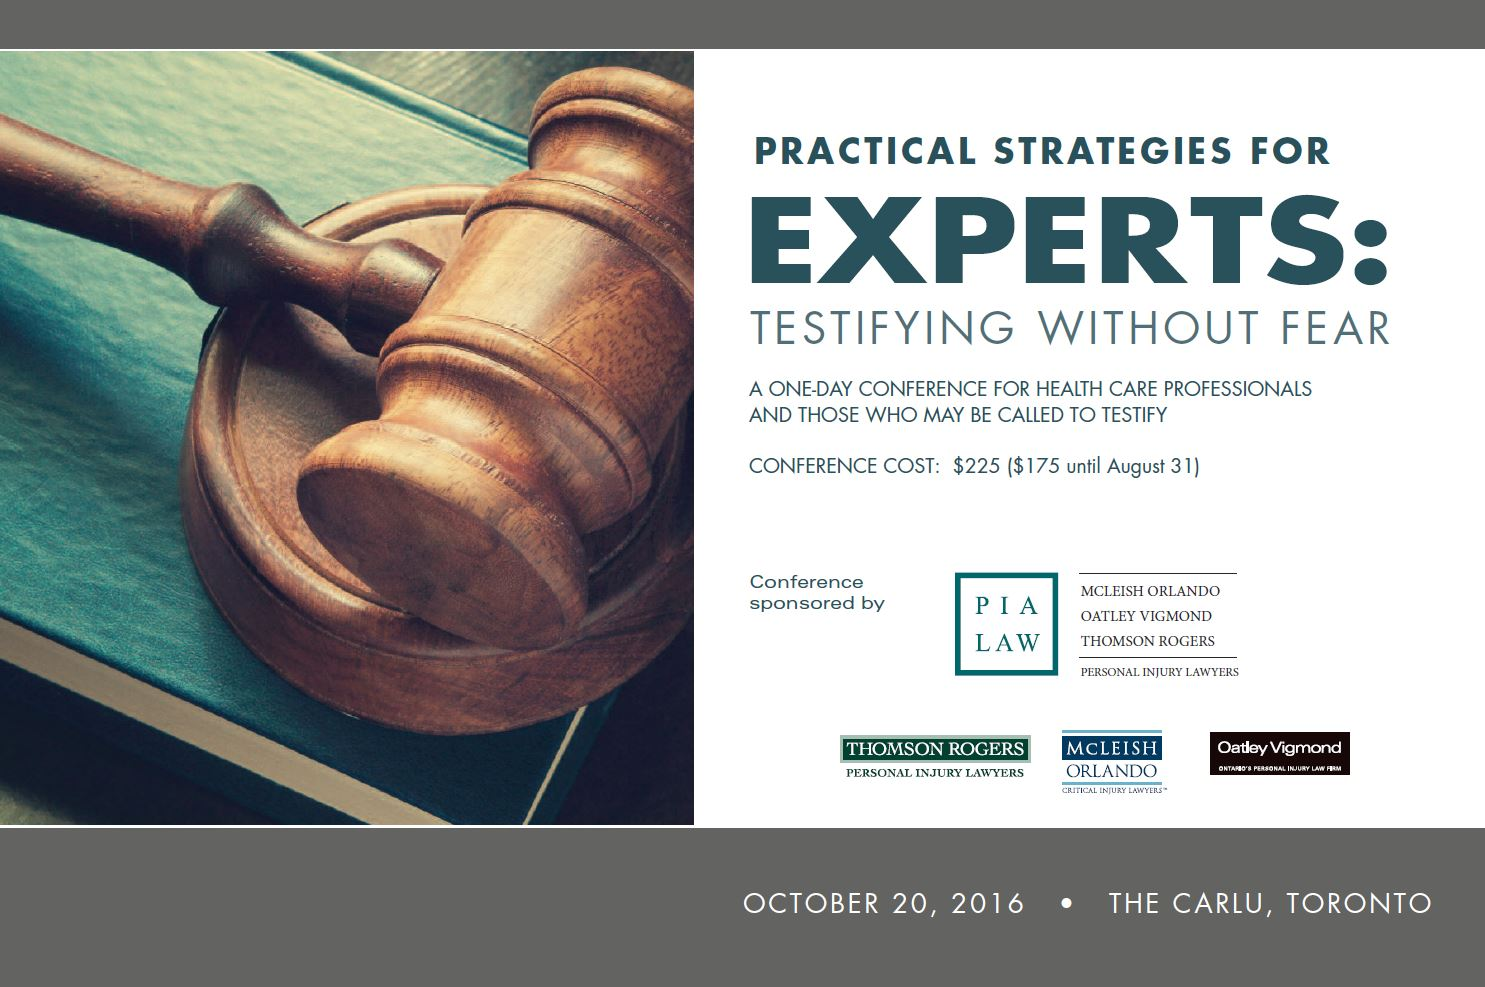 OCT 20, 2016 PIA Law Practical Strategies for Experts conference